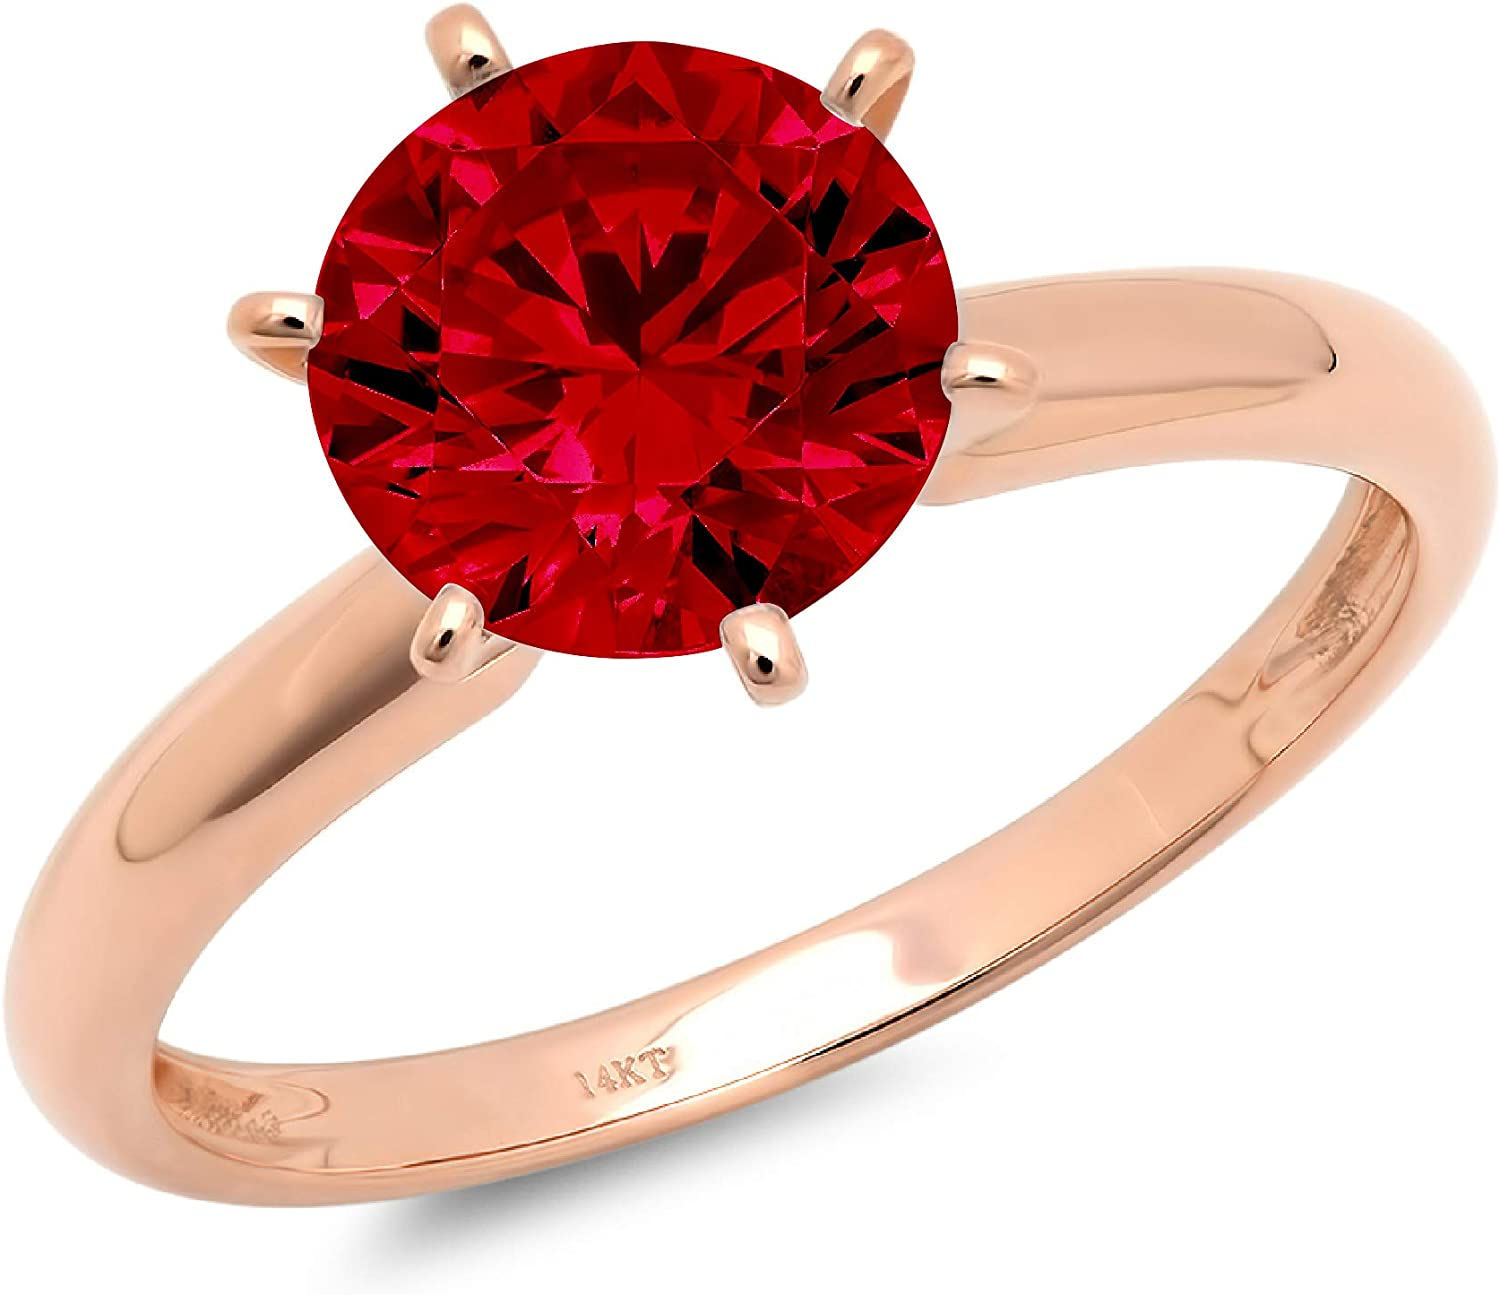 1.9ct Brilliant Round Cut Solitaire Natural Crimson Deep Red Garnet Ideal VVS1 6-Prong Engagement Wedding Bridal Promise Anniversary Ring in Solid 14k rose Gold for Women